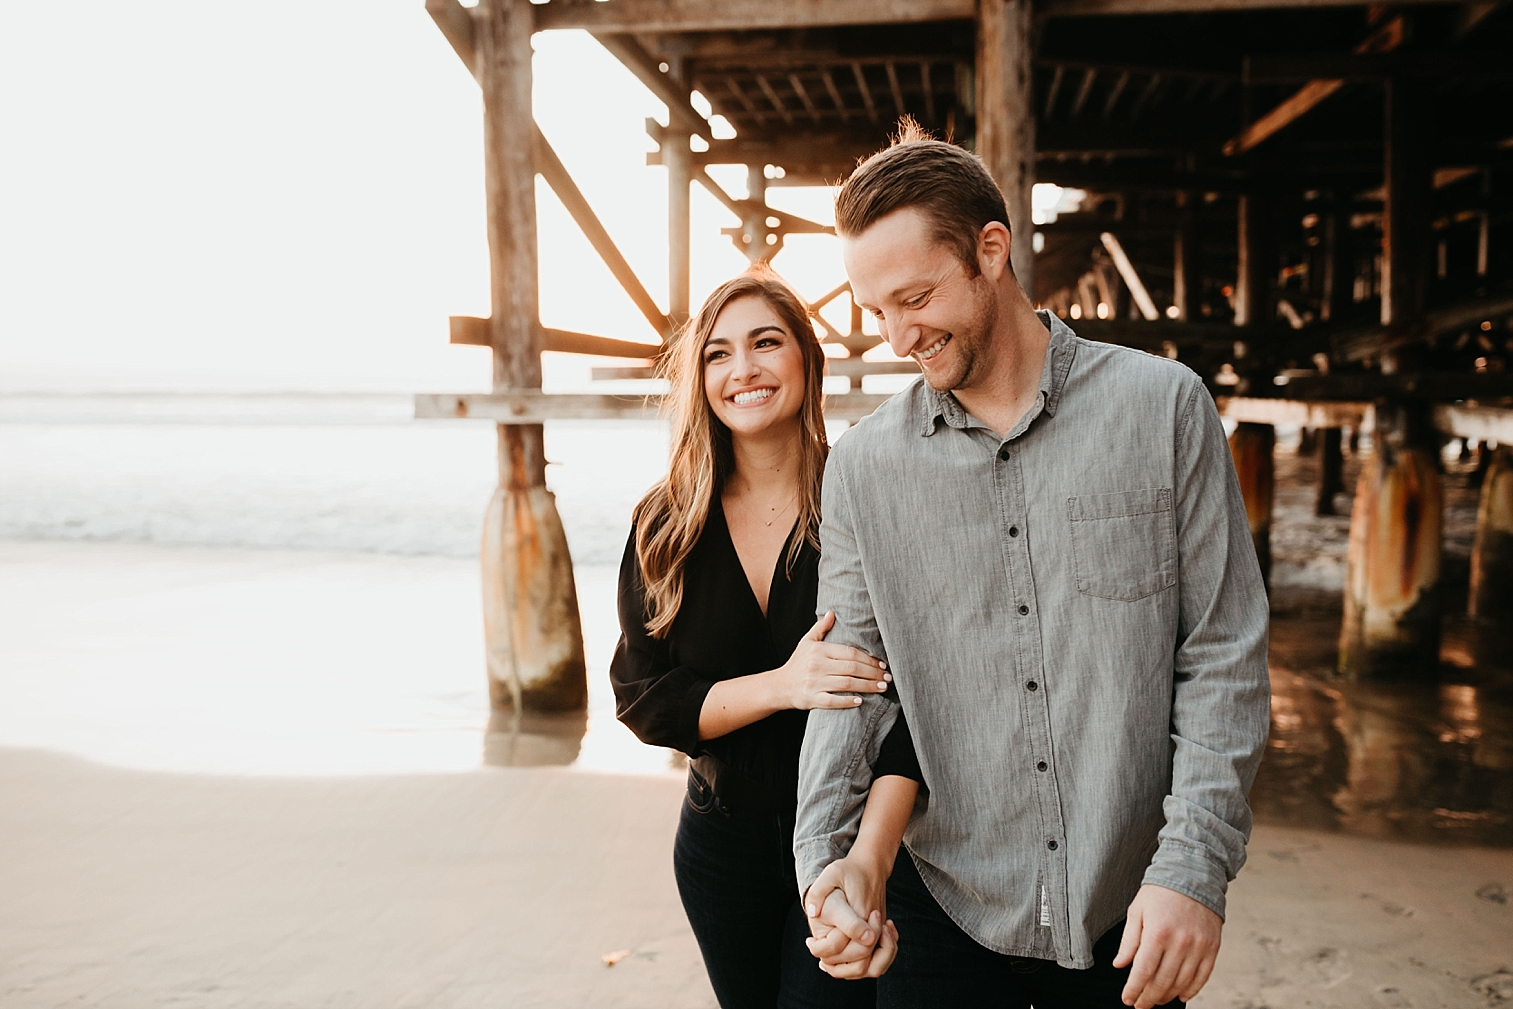 Little-Italy-San-Diego-Engagement-Session-49.jpg